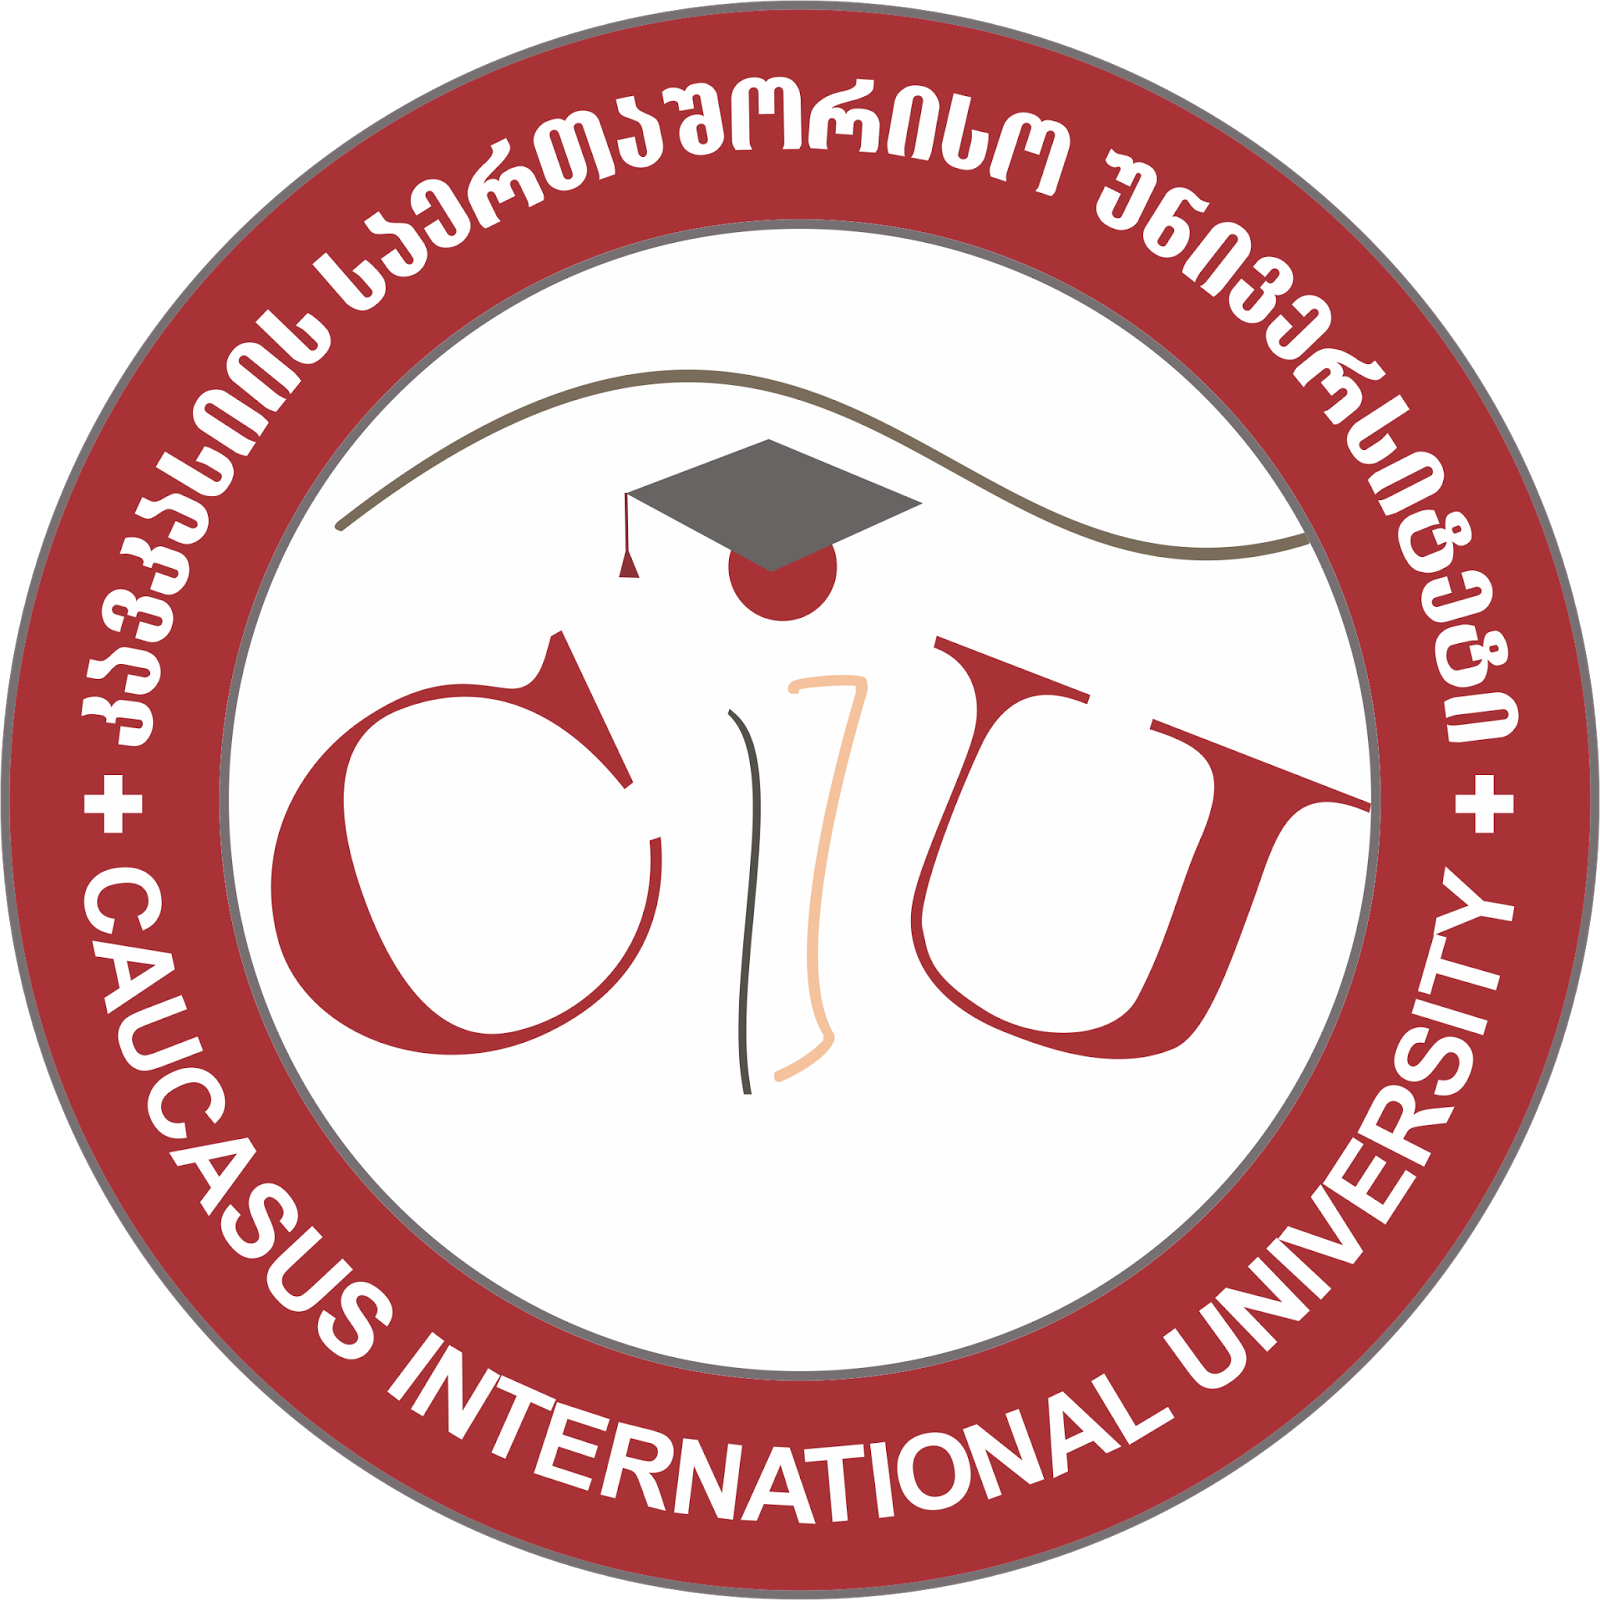 Caucasus International University - Georgia